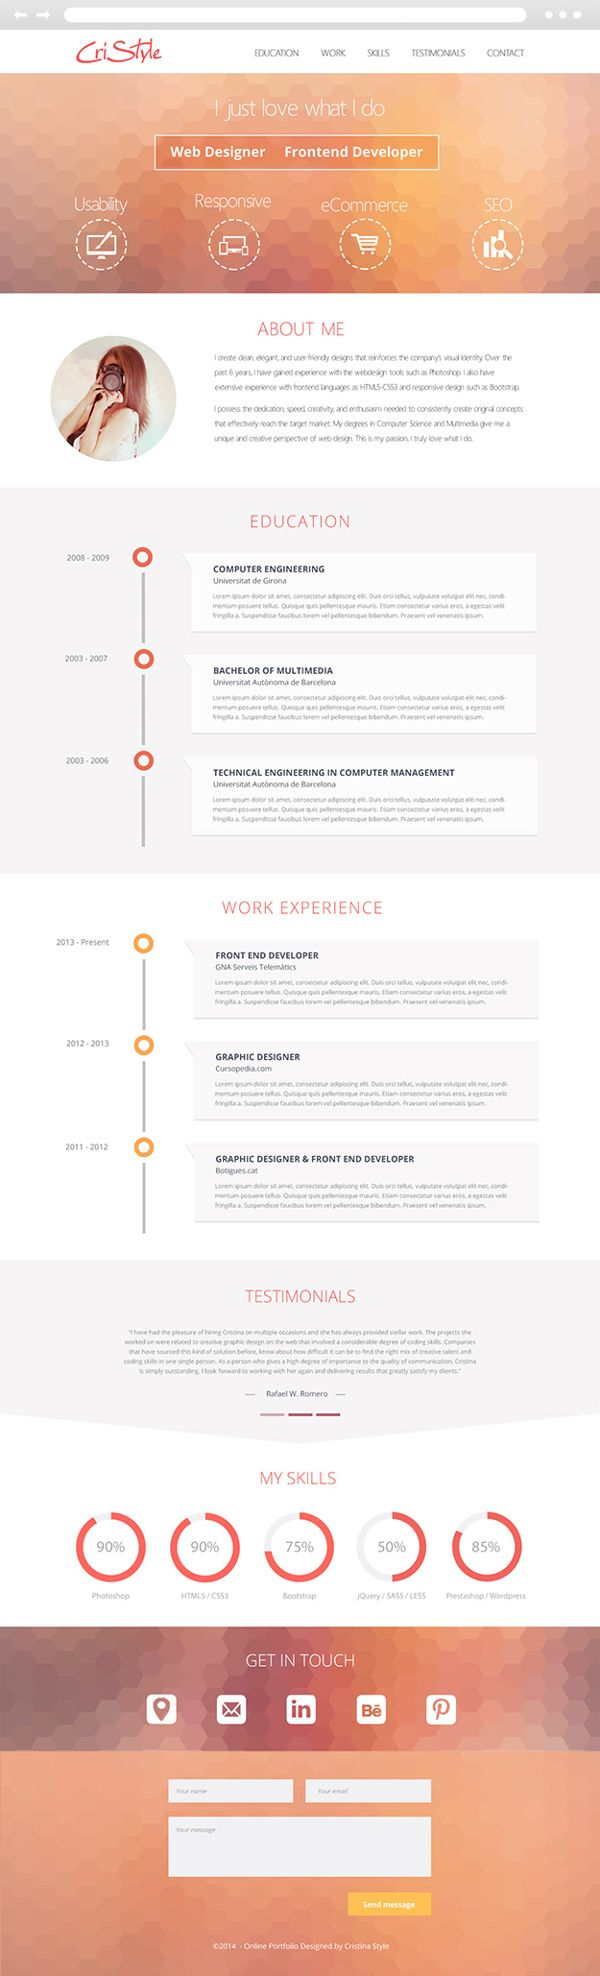 beautiful resume design by cristina stela  via behance  get one just like it at  paulruocco